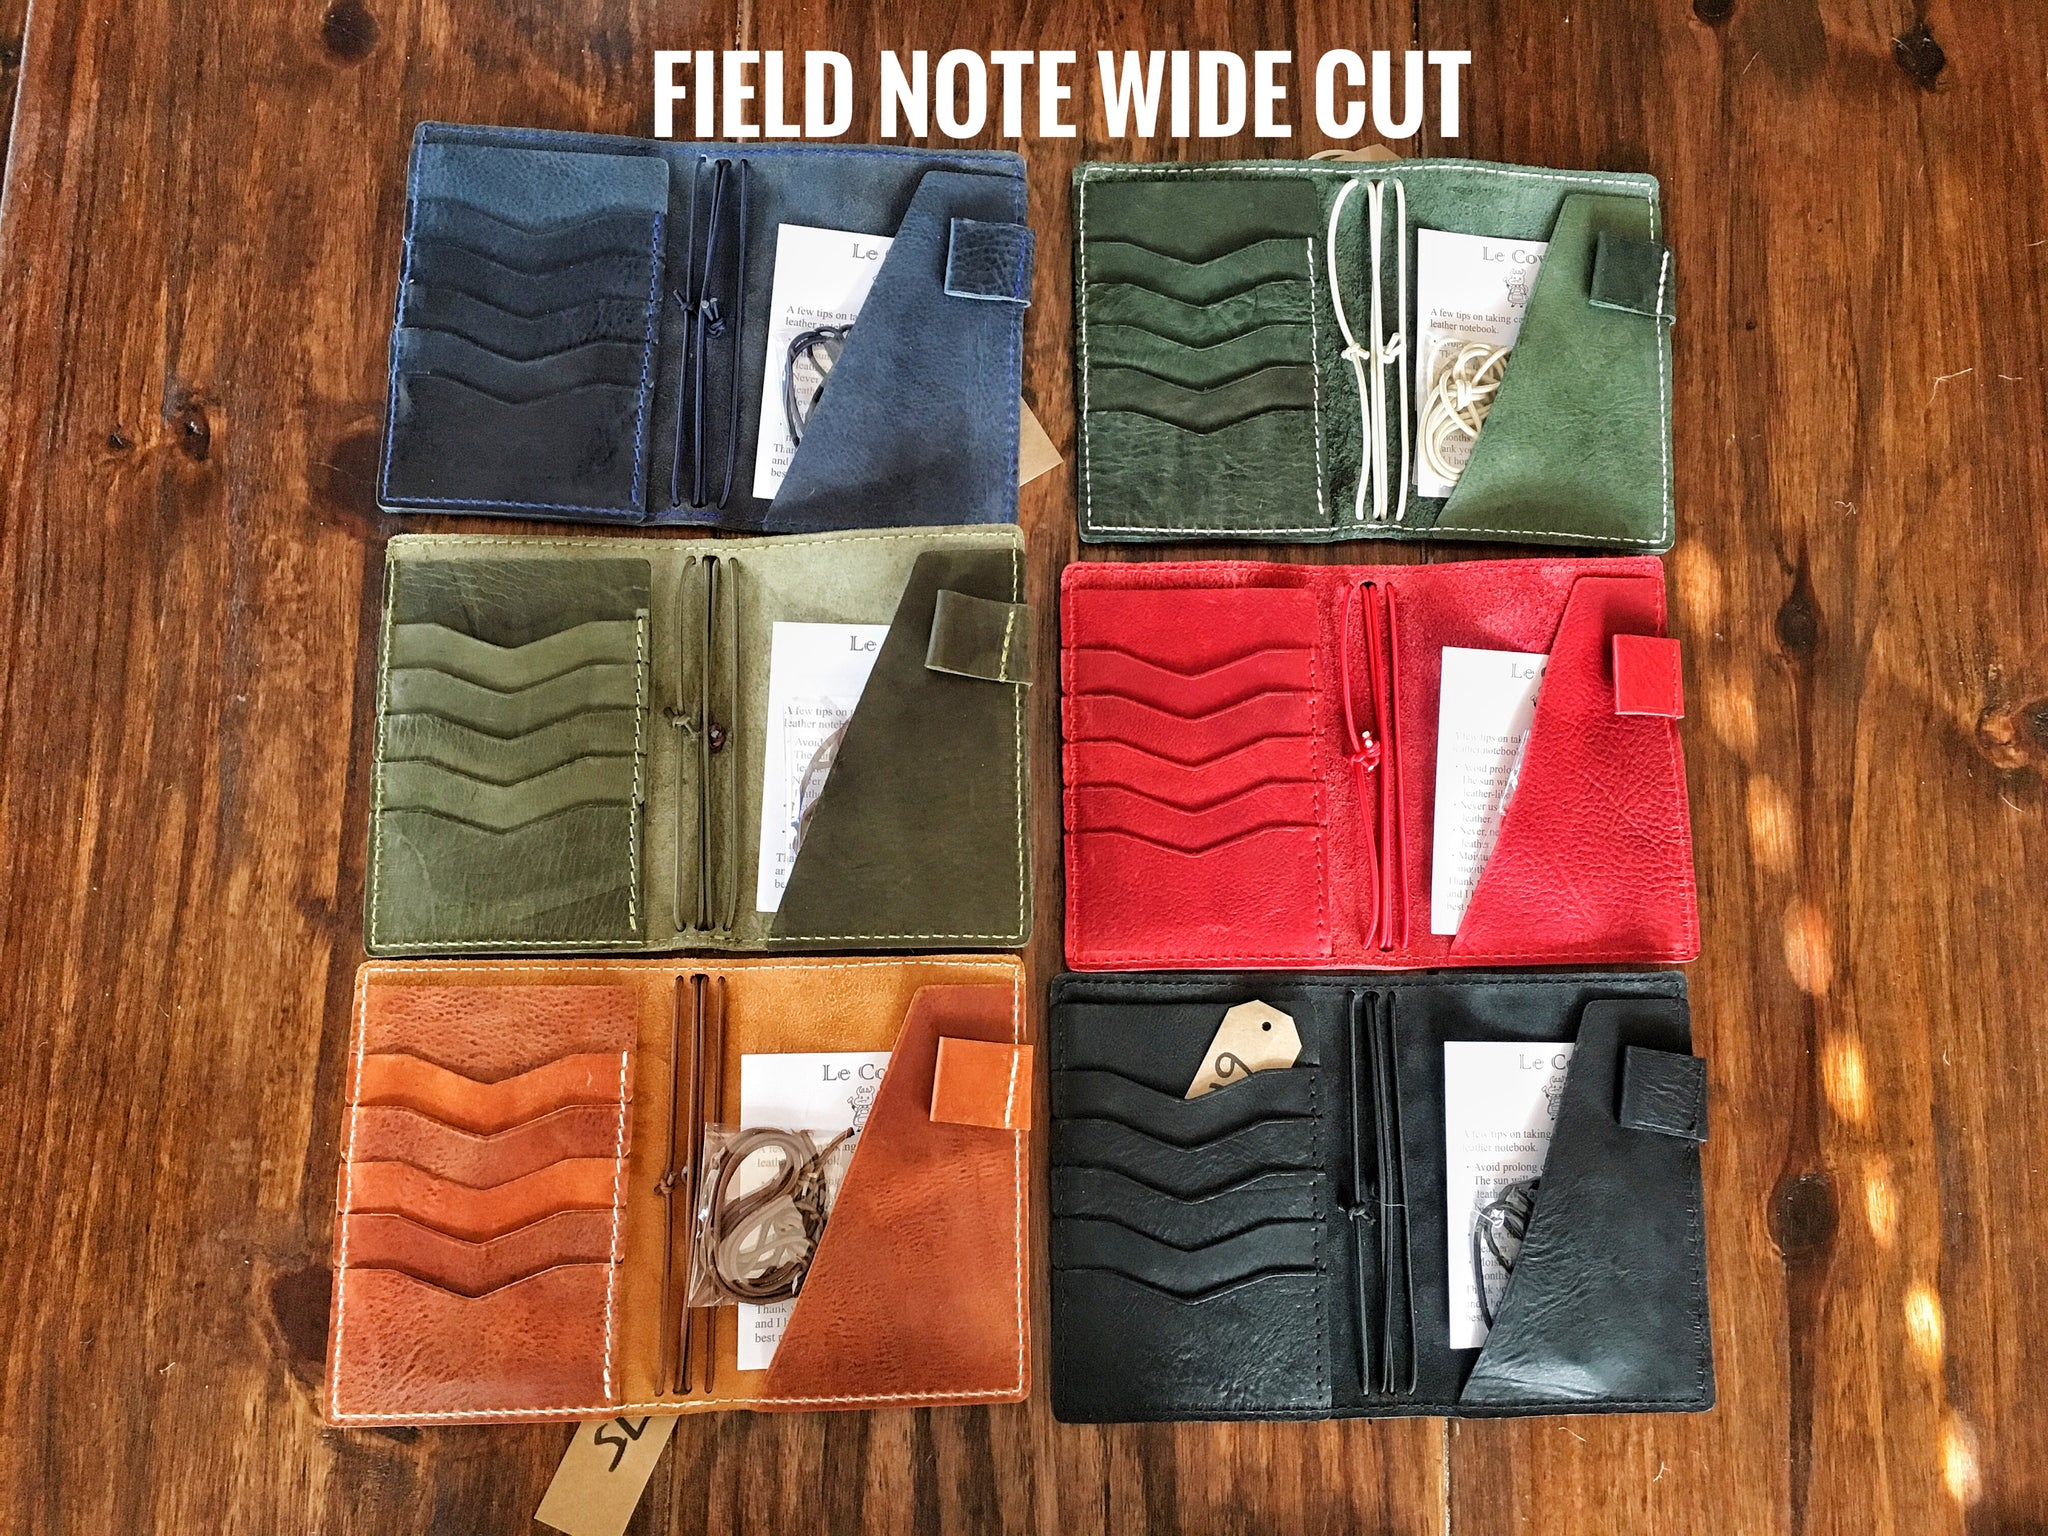 EDC COVER (Field Note/ A6/ Personal) - LeCow